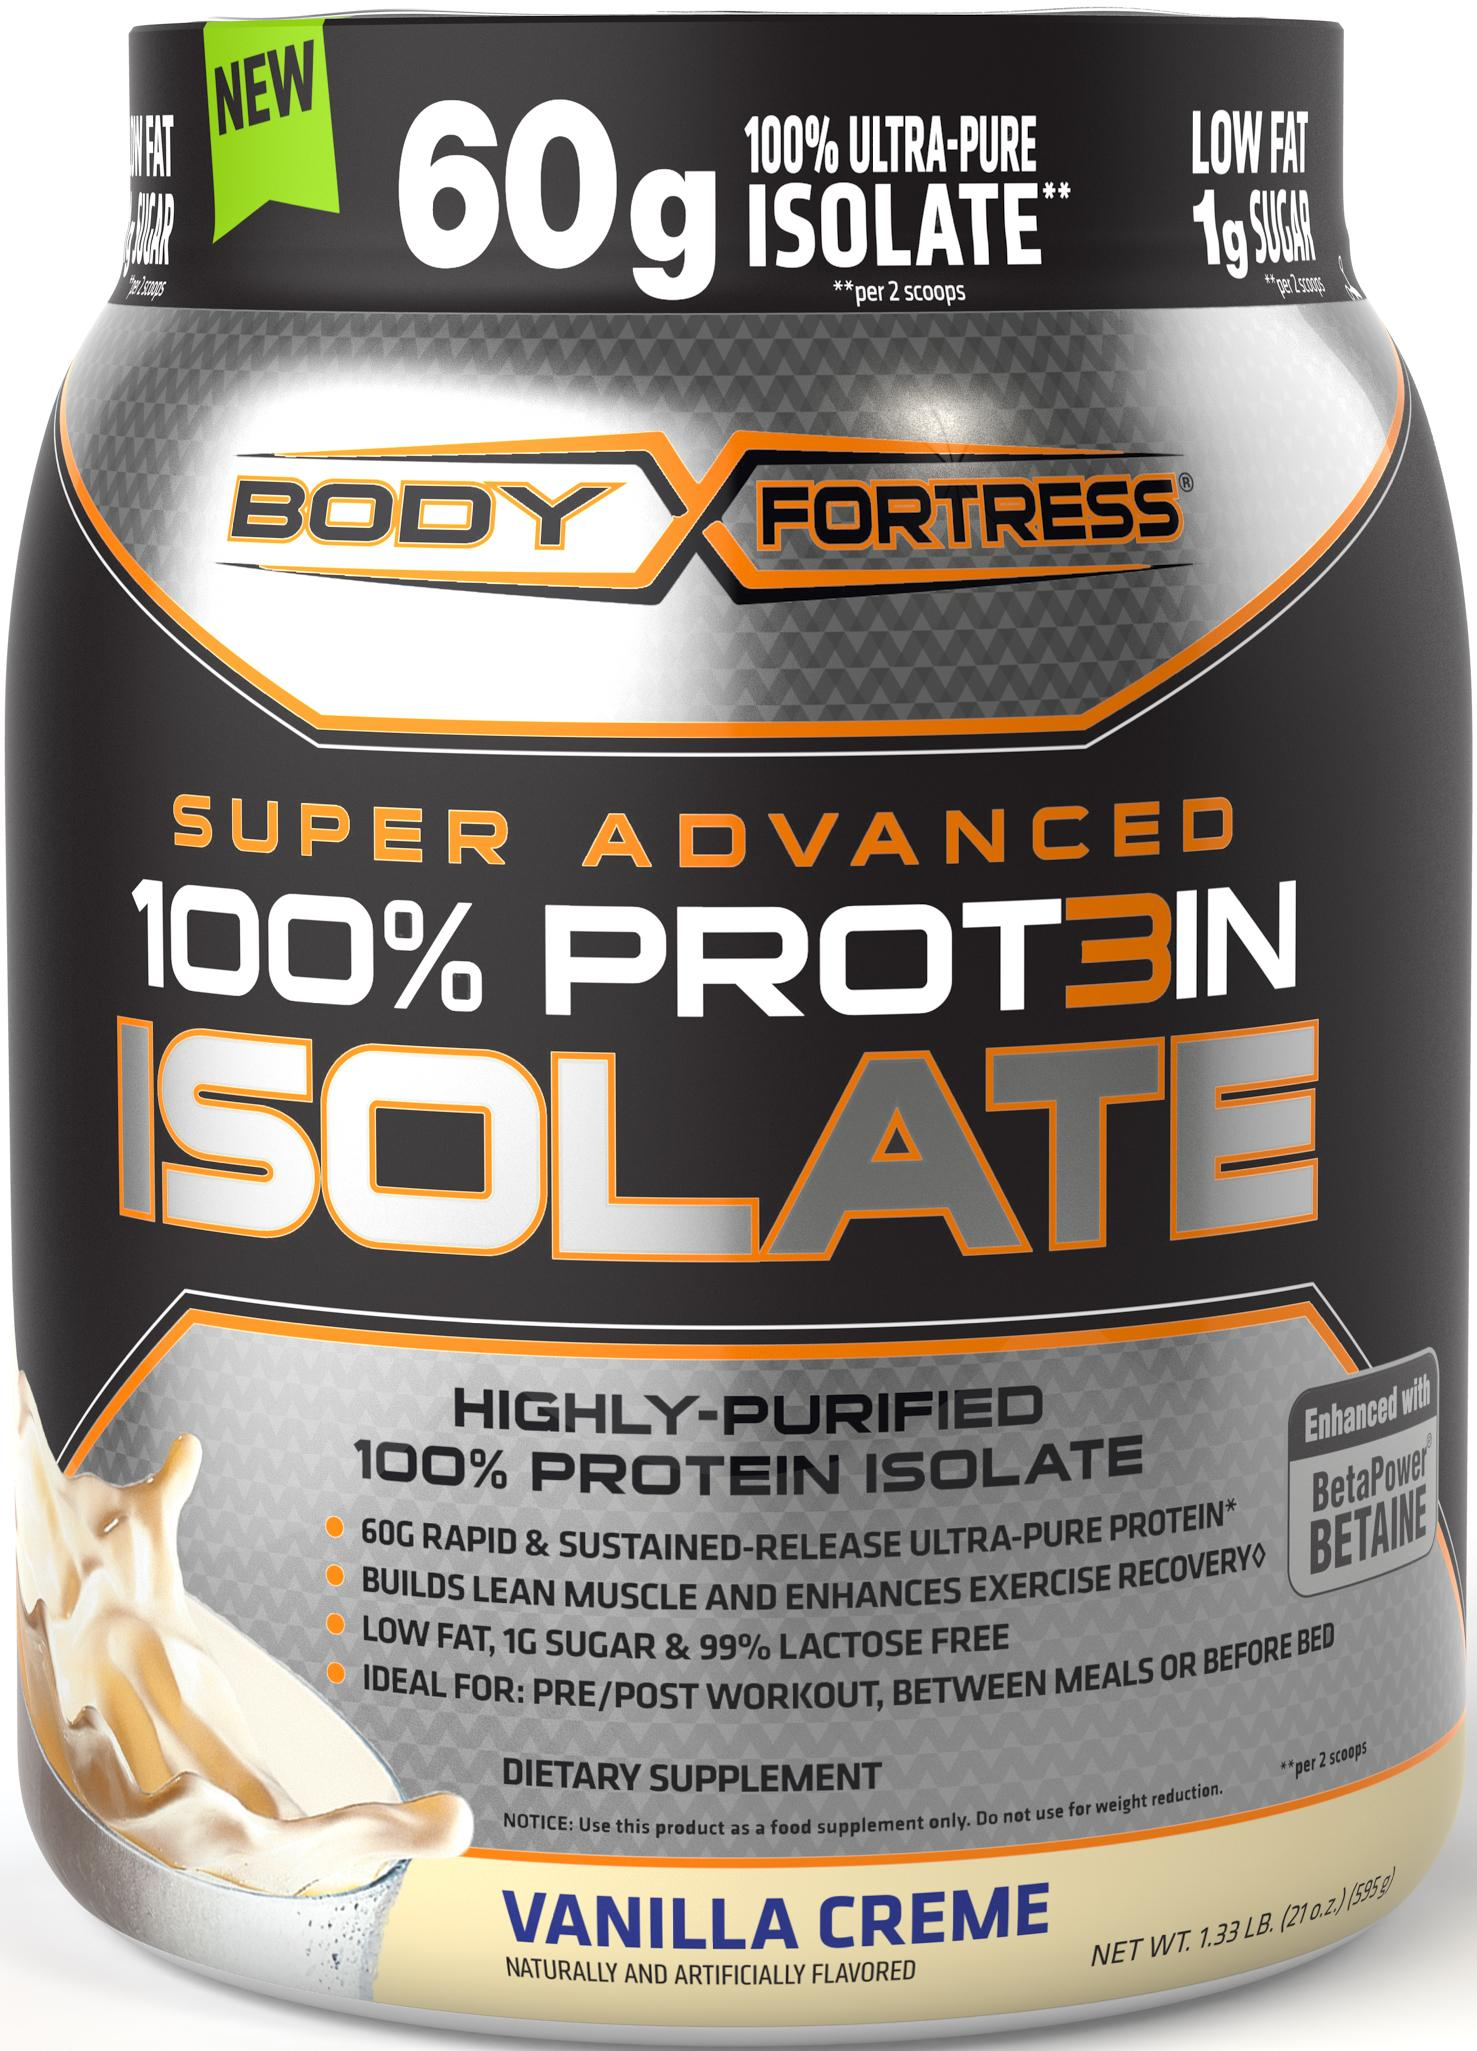 Body fortress super advanced whey protein isolate